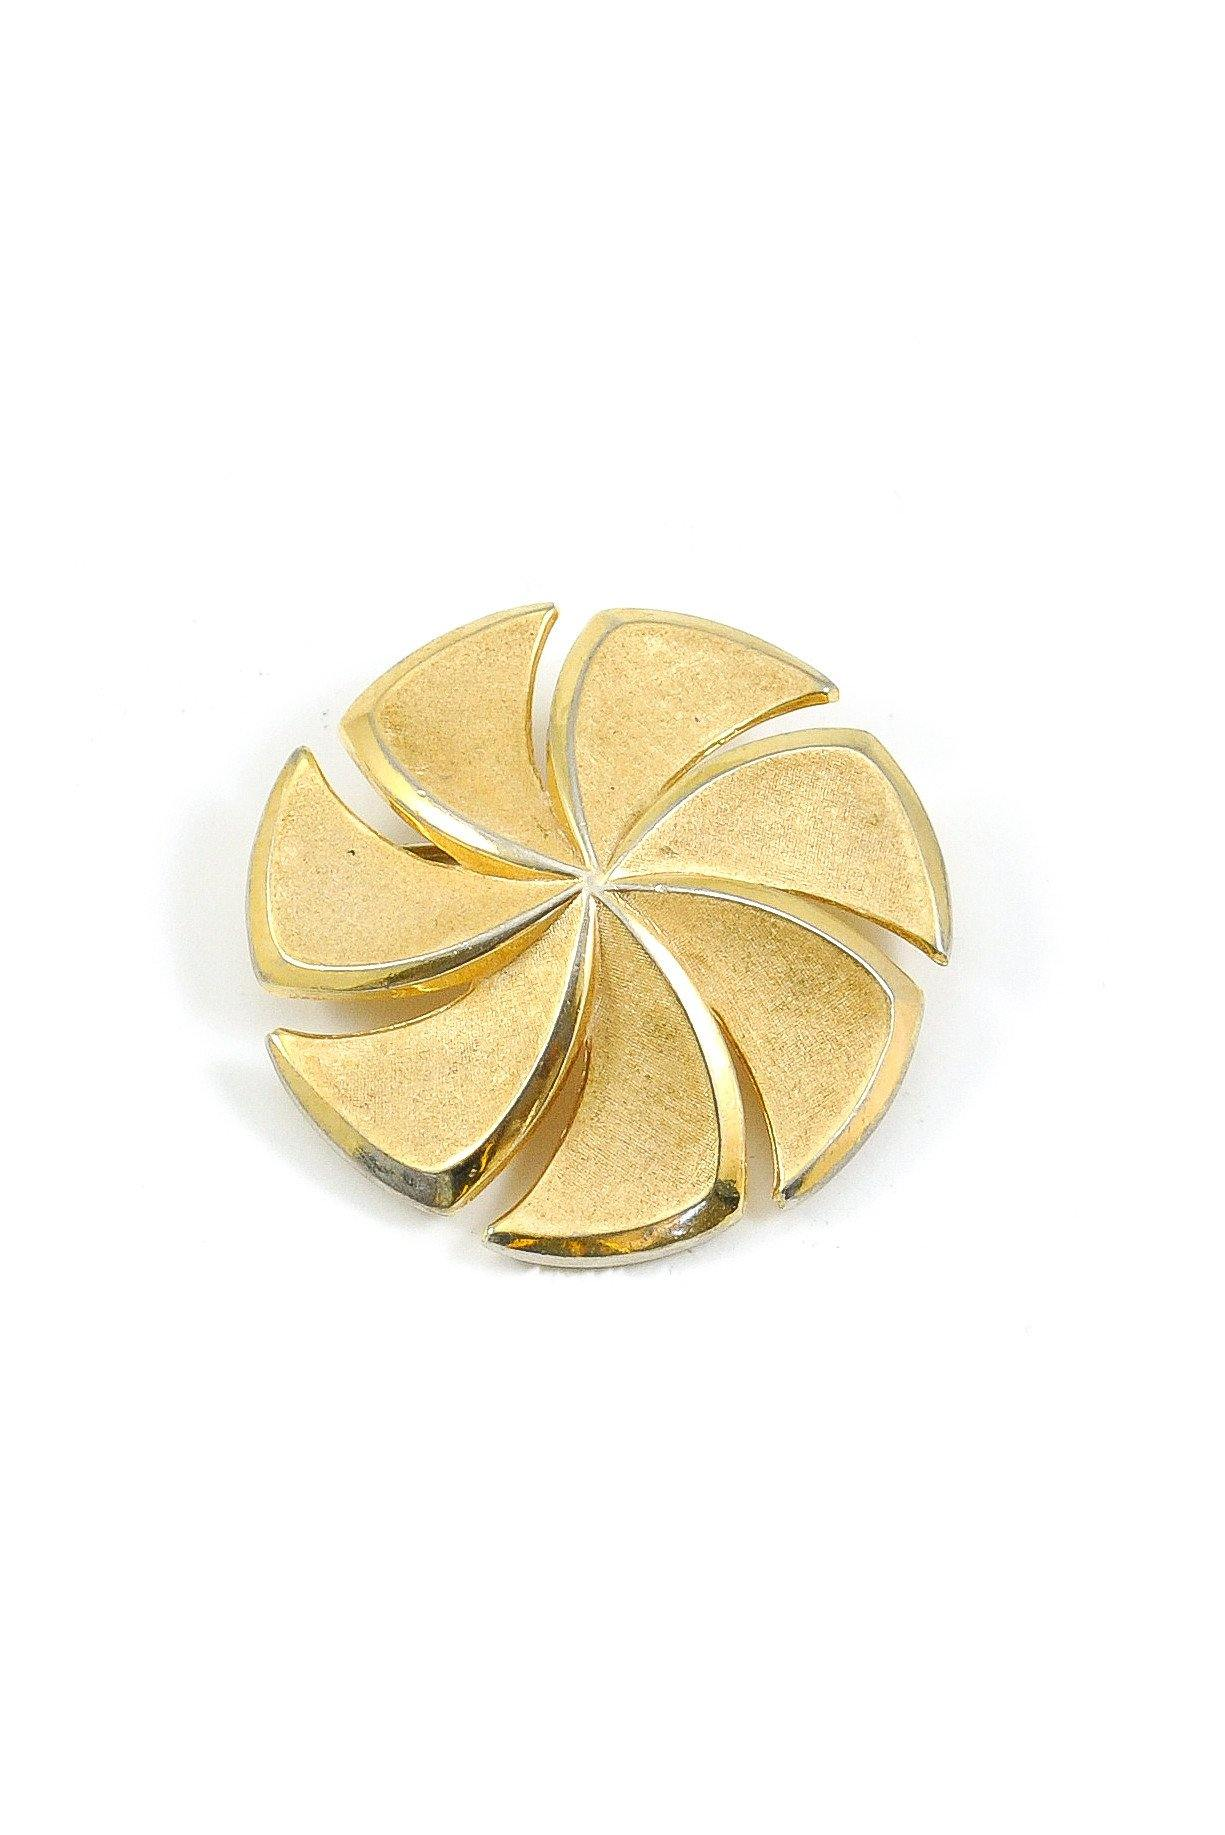 50's Trifari Gold Swirl Brooch